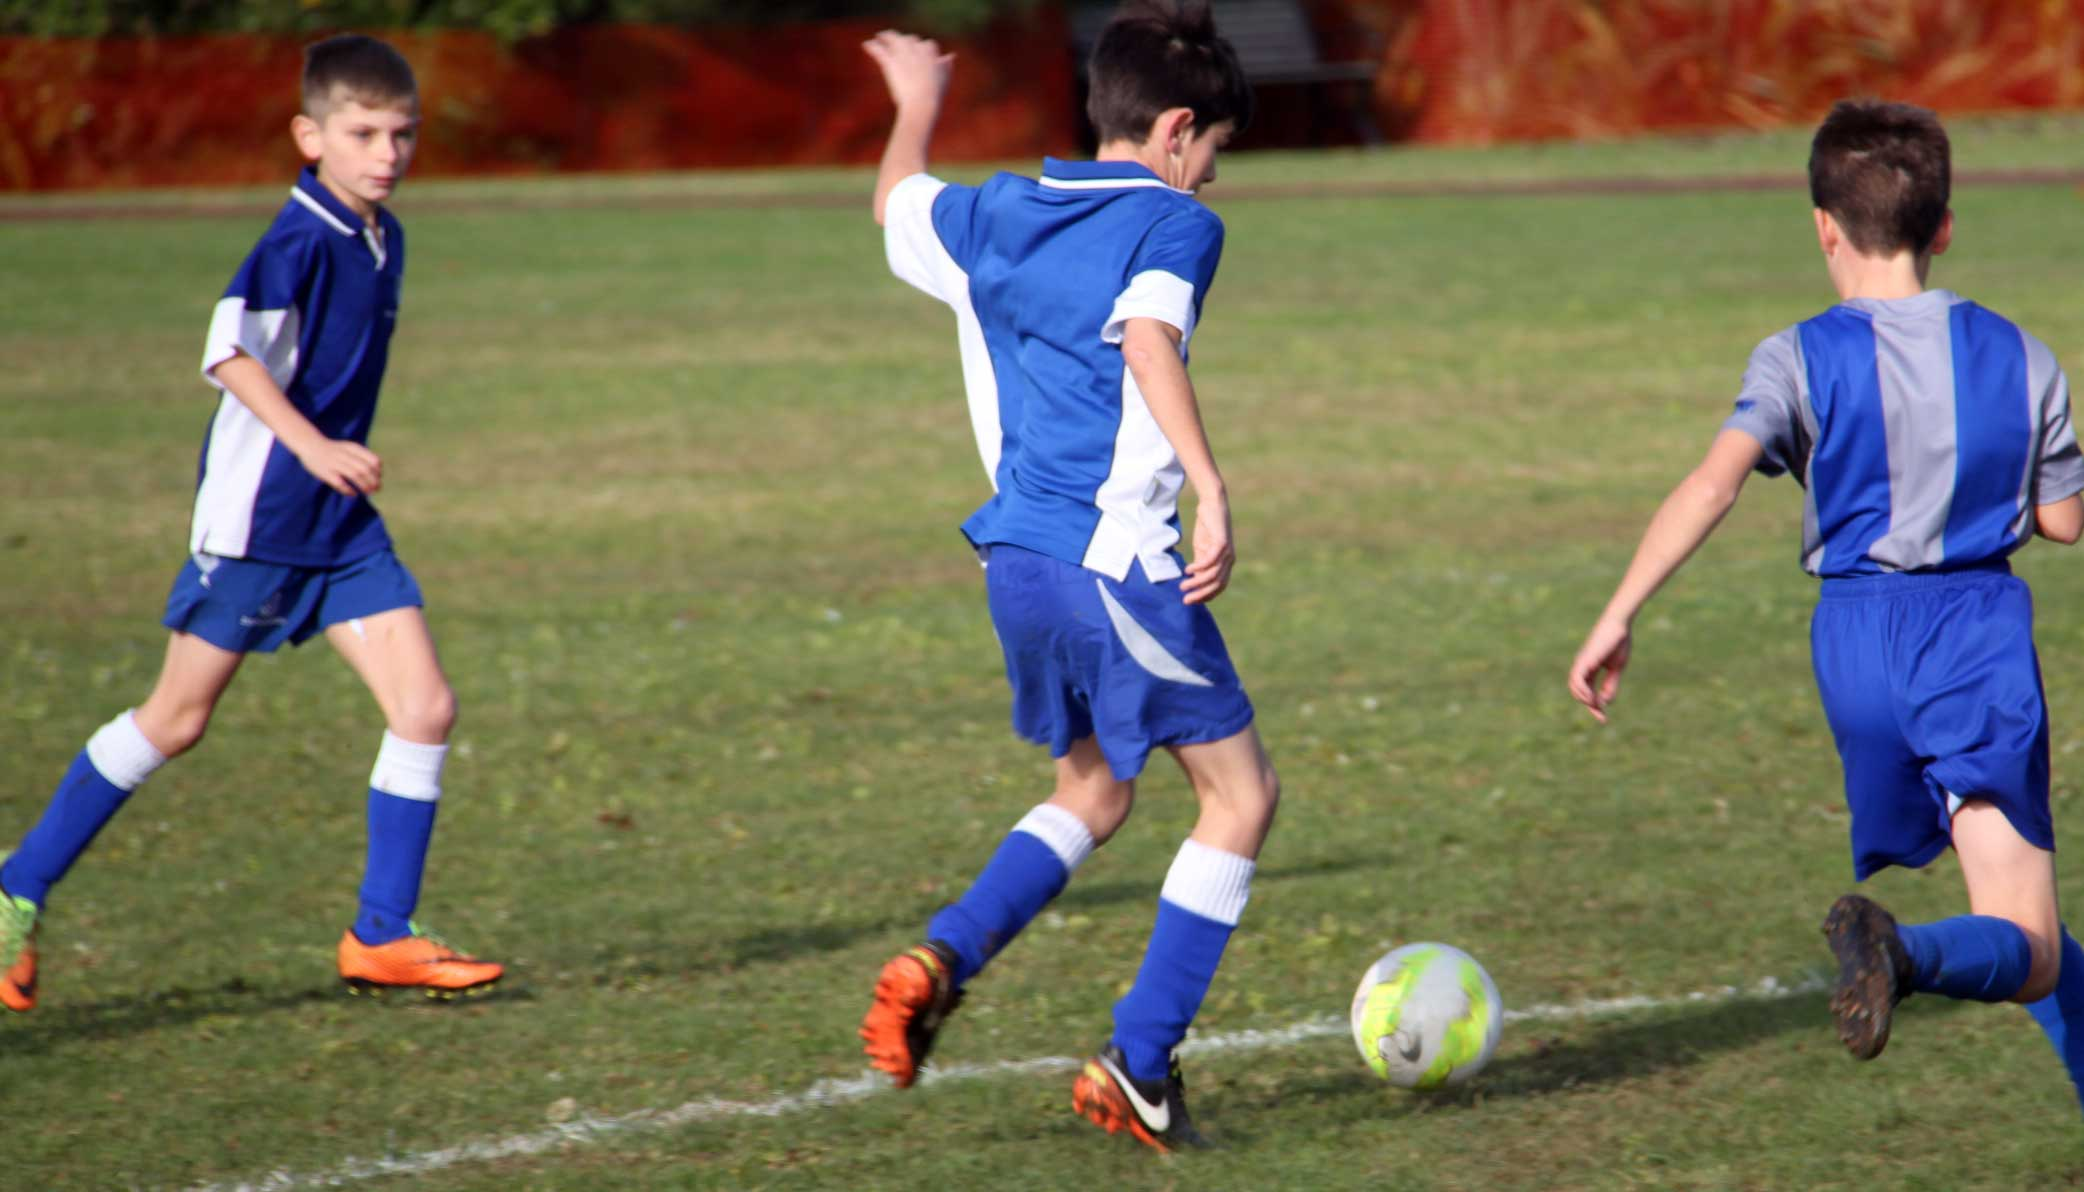 Saint-Kentigern-Boys'-School-Sports-Football.jpg